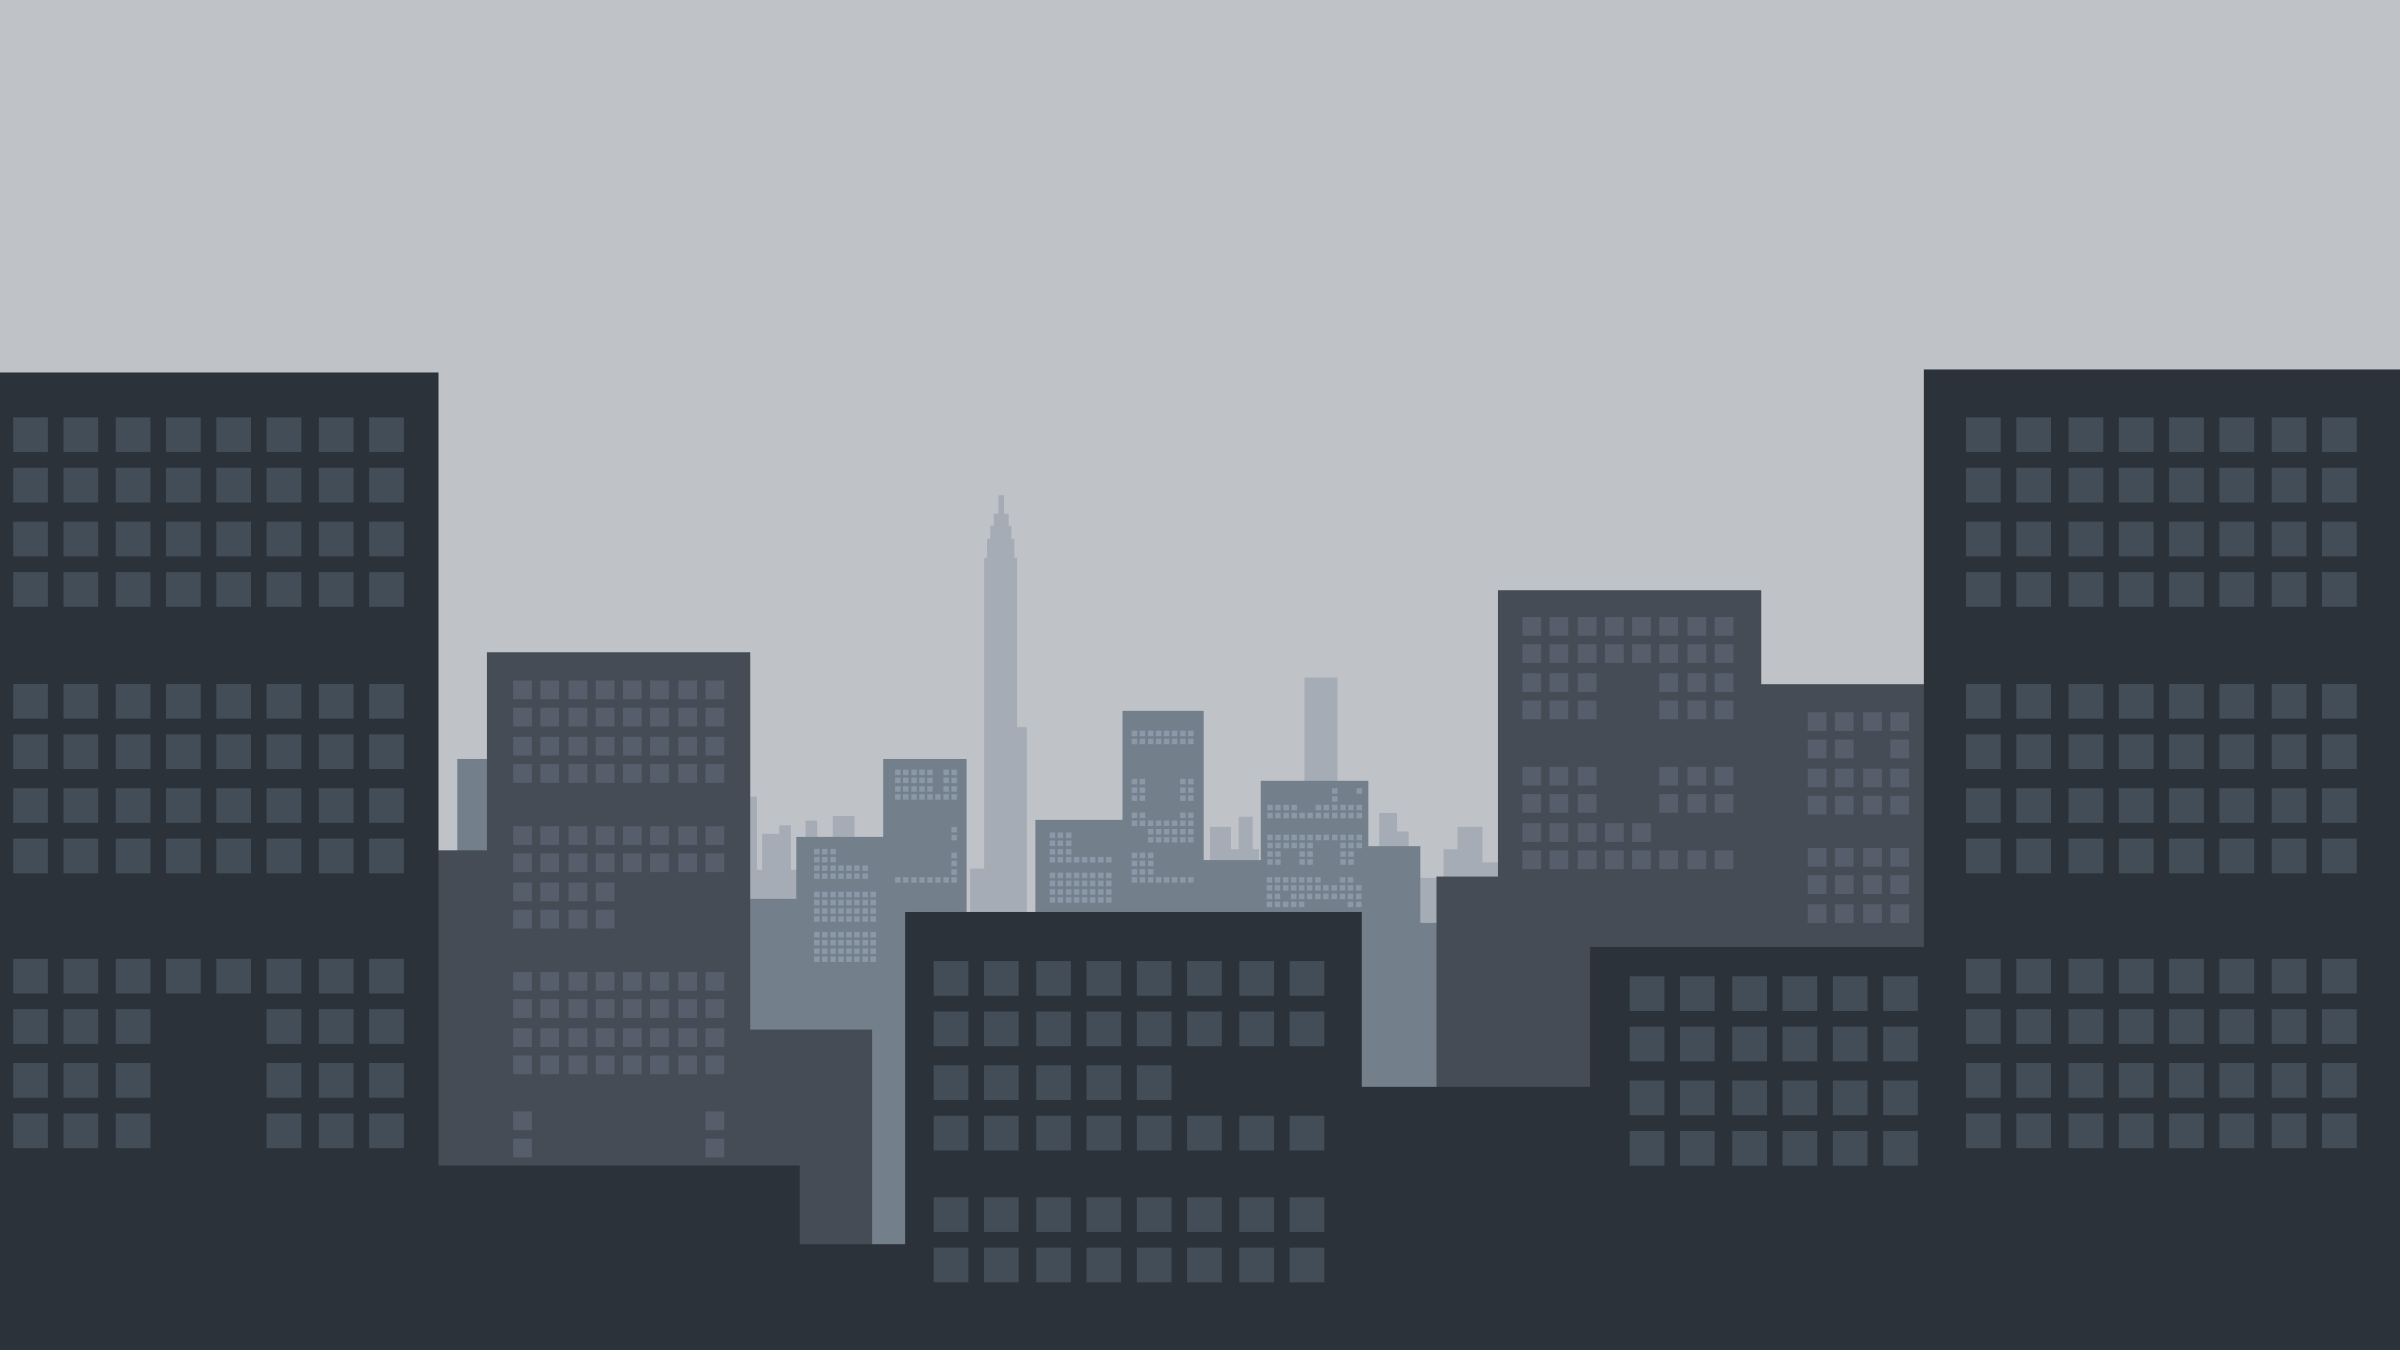 2D Cityscape in Overcast by pagarmidna